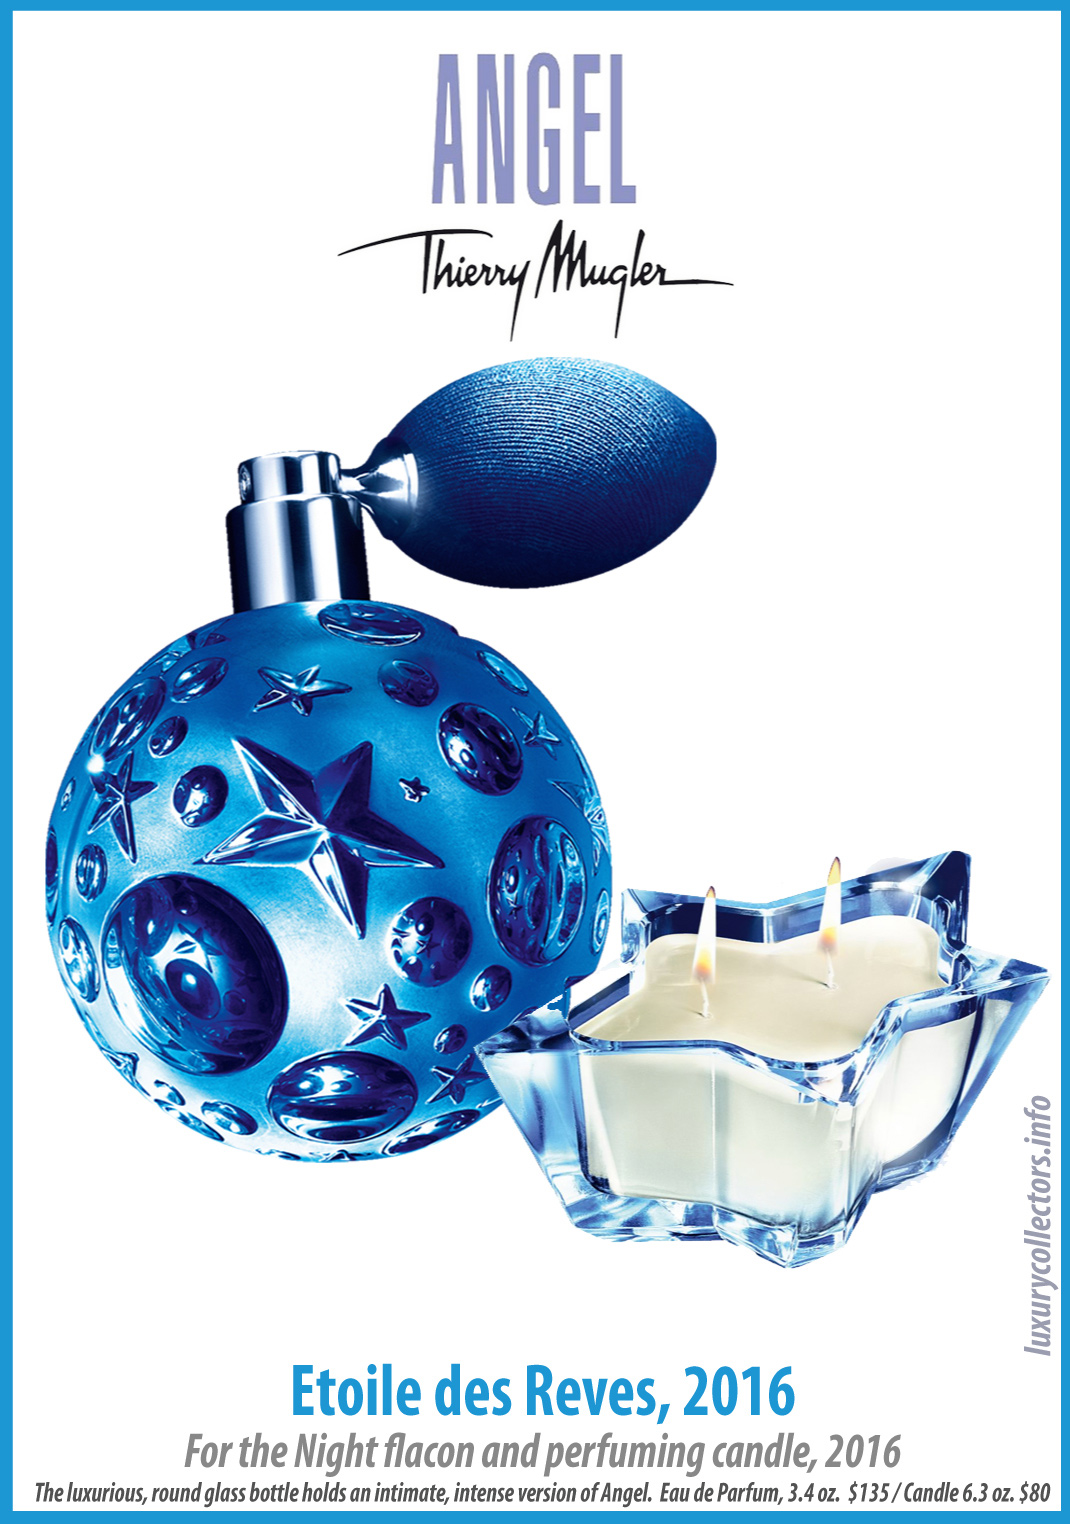 Thierry Mugler Angel Perfume Collector's Limited Edition Bottle 2016 Etoile des Reves For the Night Star